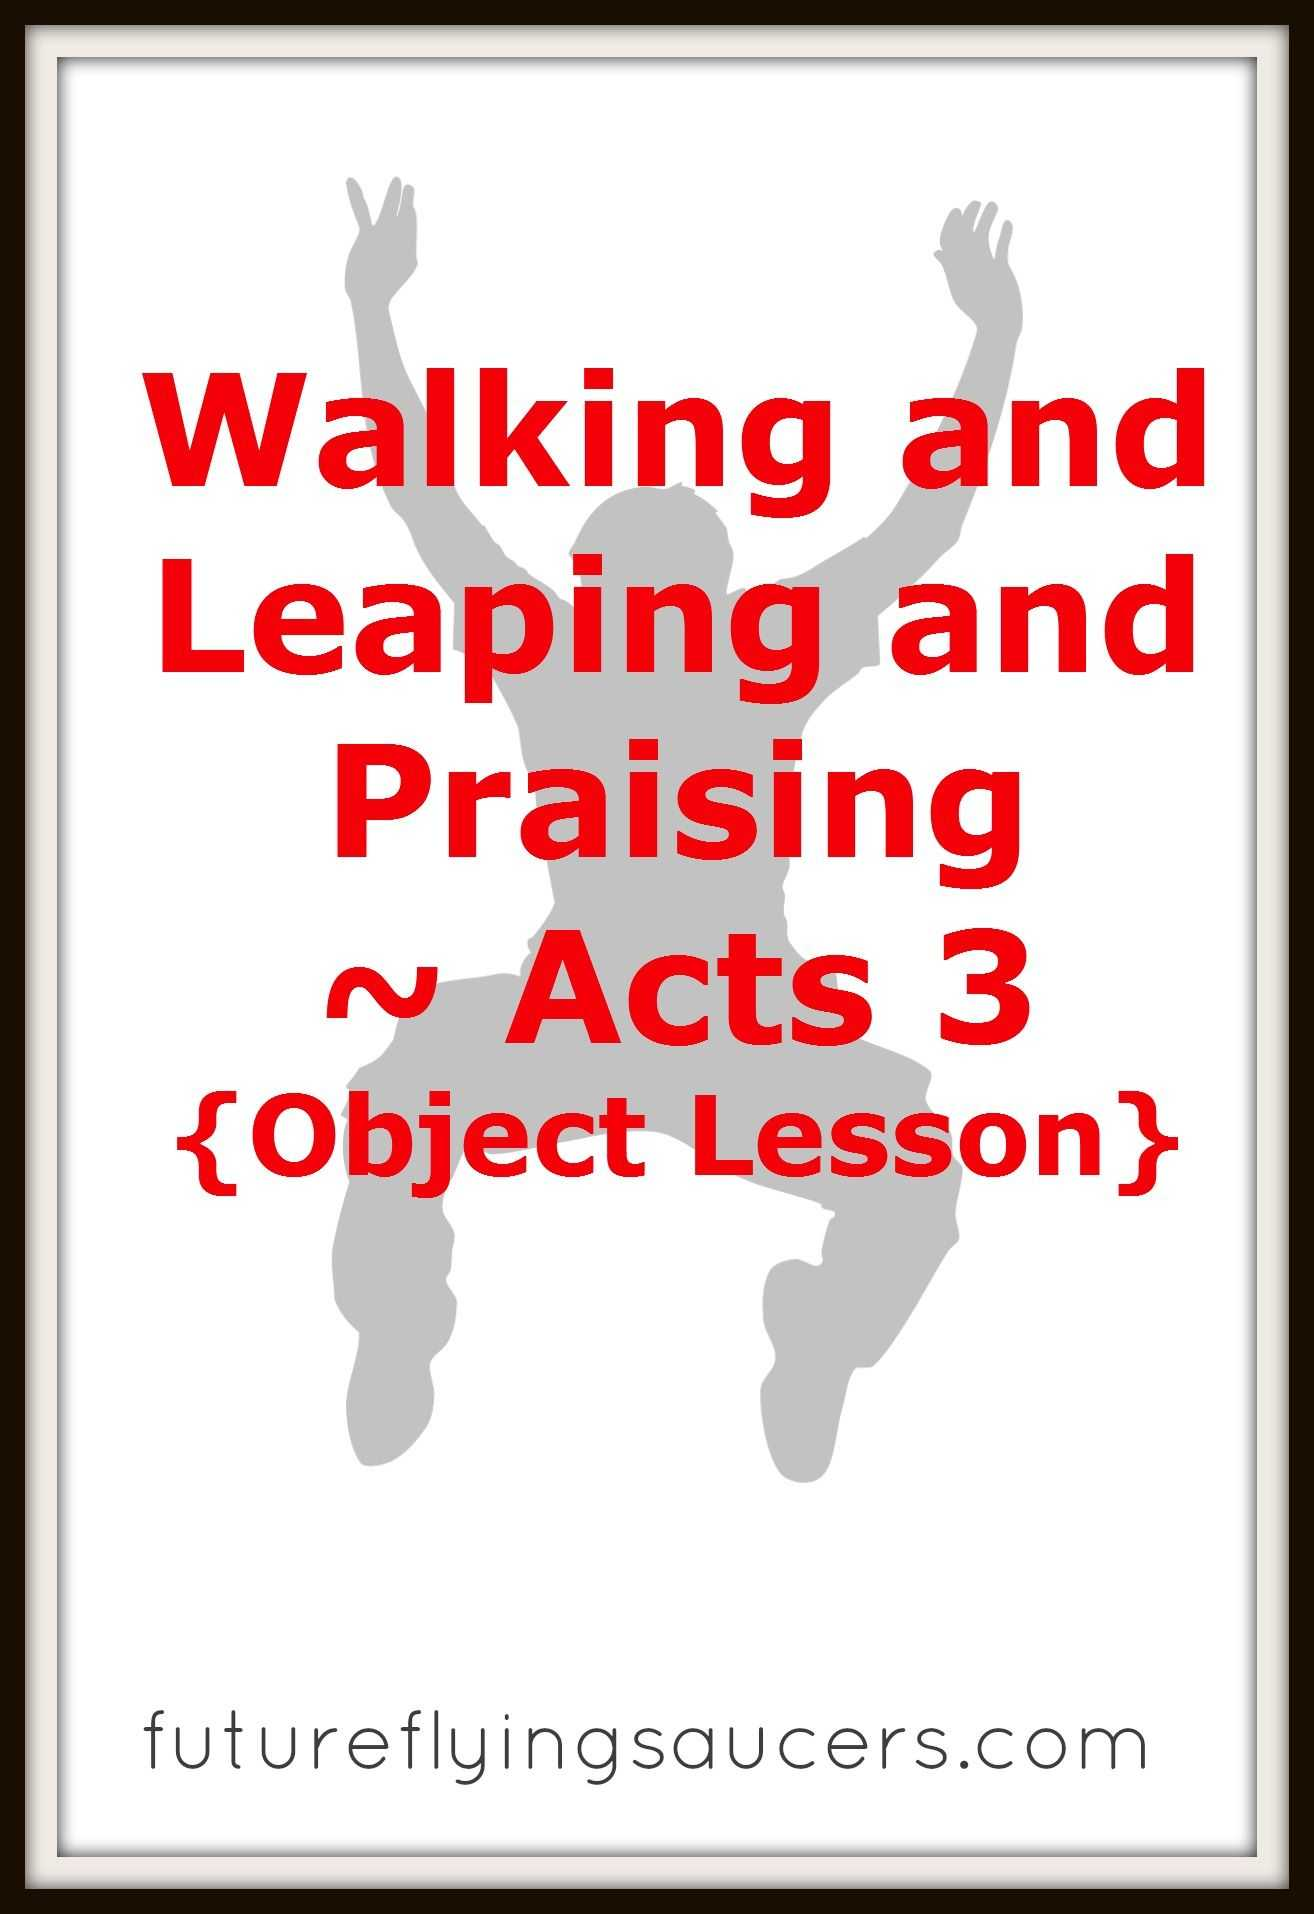 Bible Worksheets for Middle School and Walking and Leaping and Praising Acts 3 Object Lesson